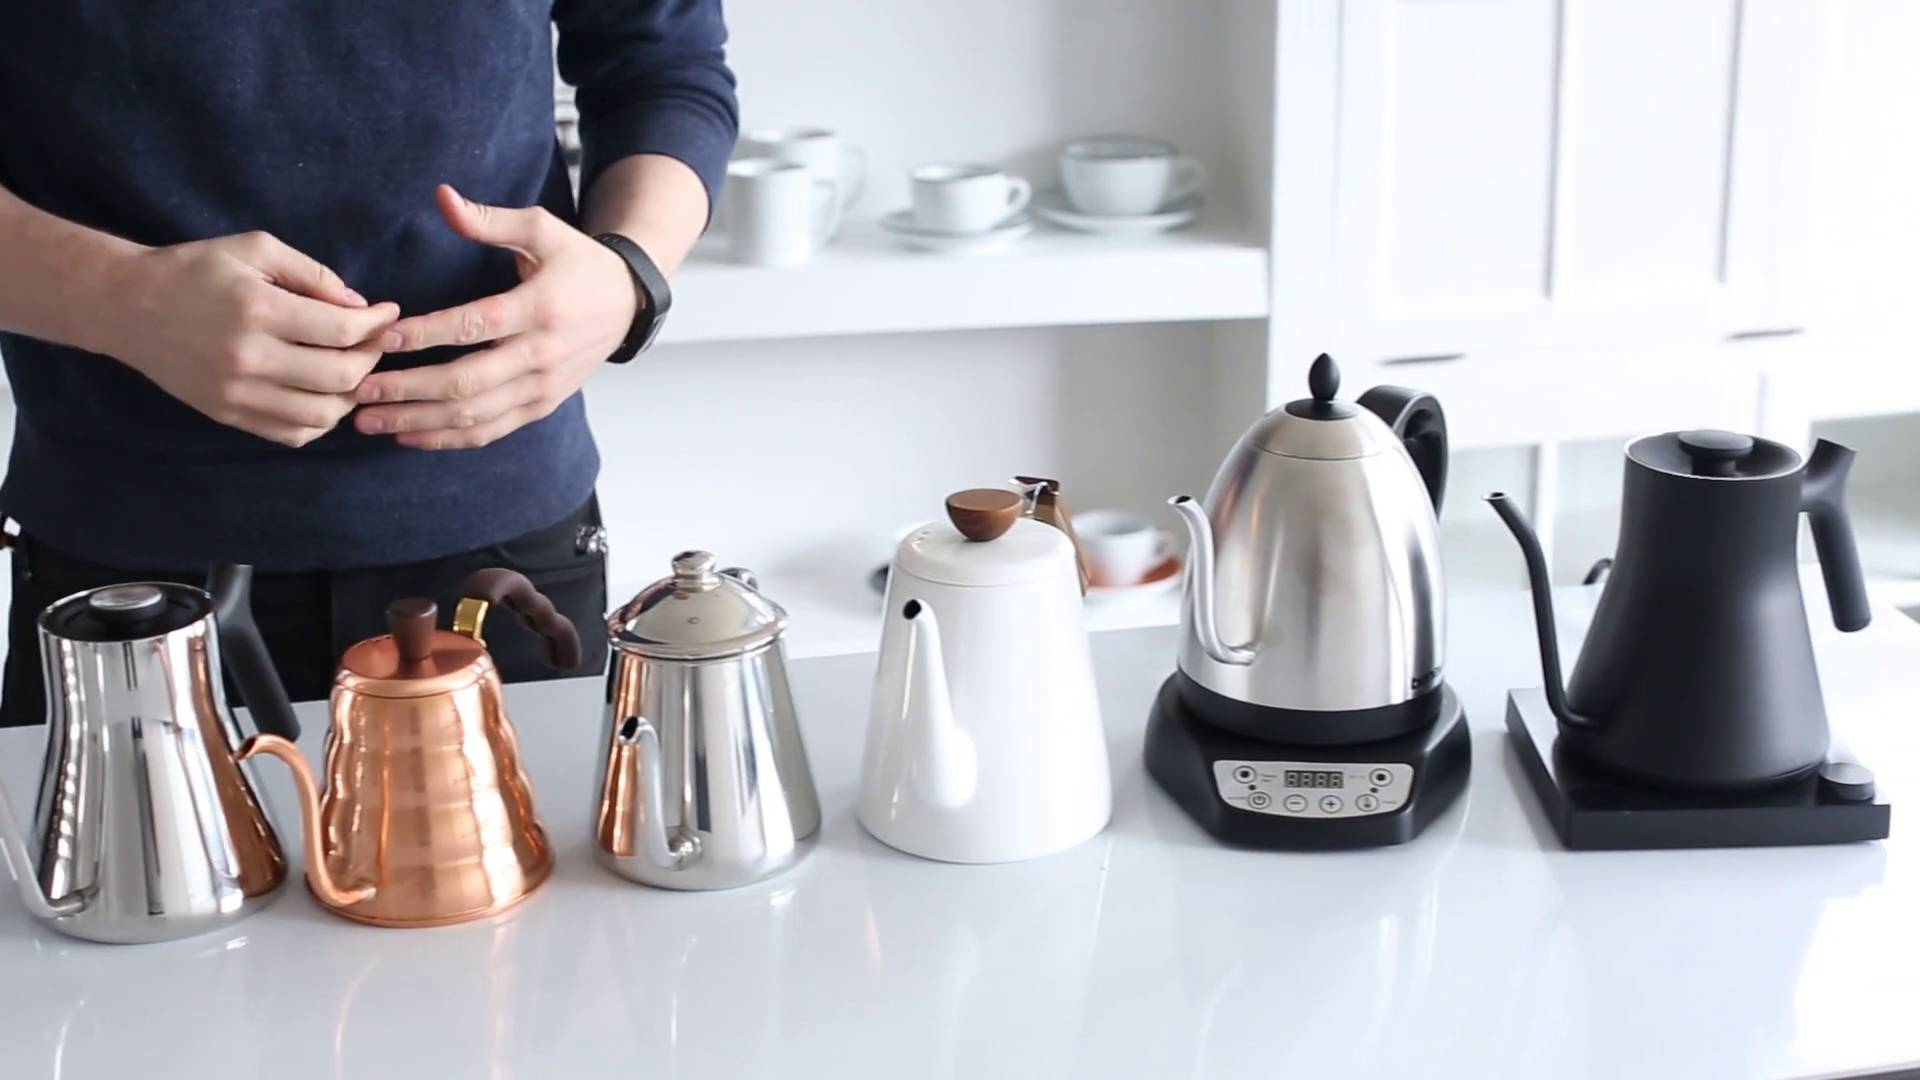 Six kettles on a counter